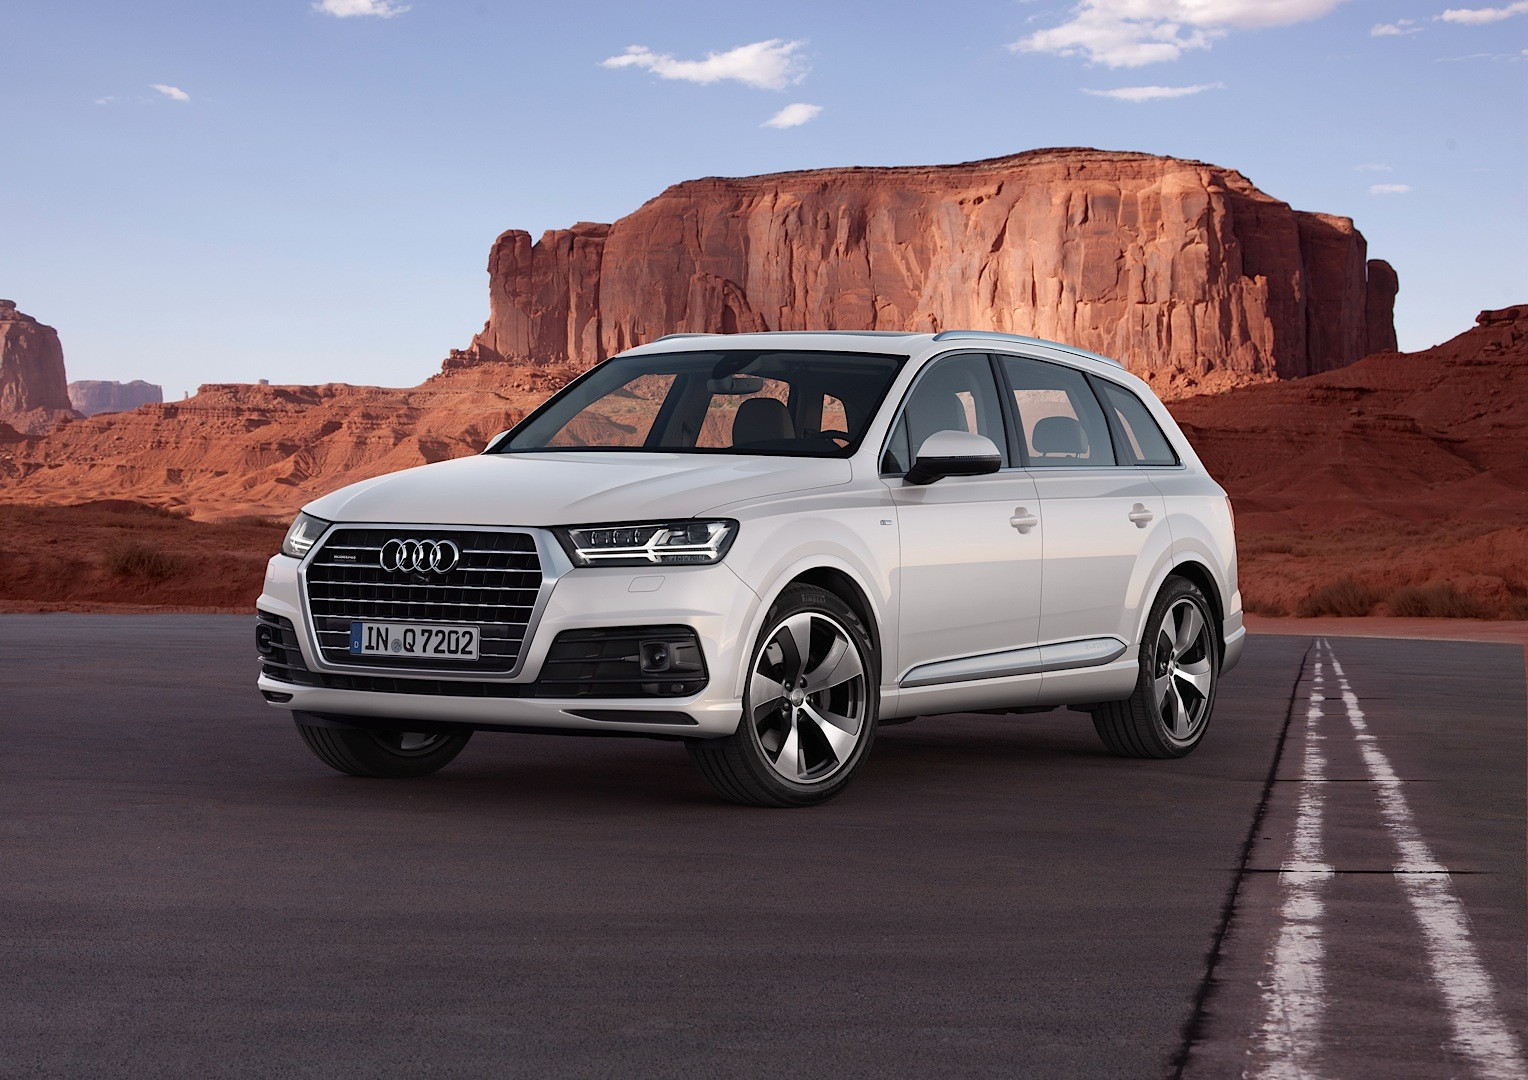 audi shows 2015 q7 in new tofana white color reveals